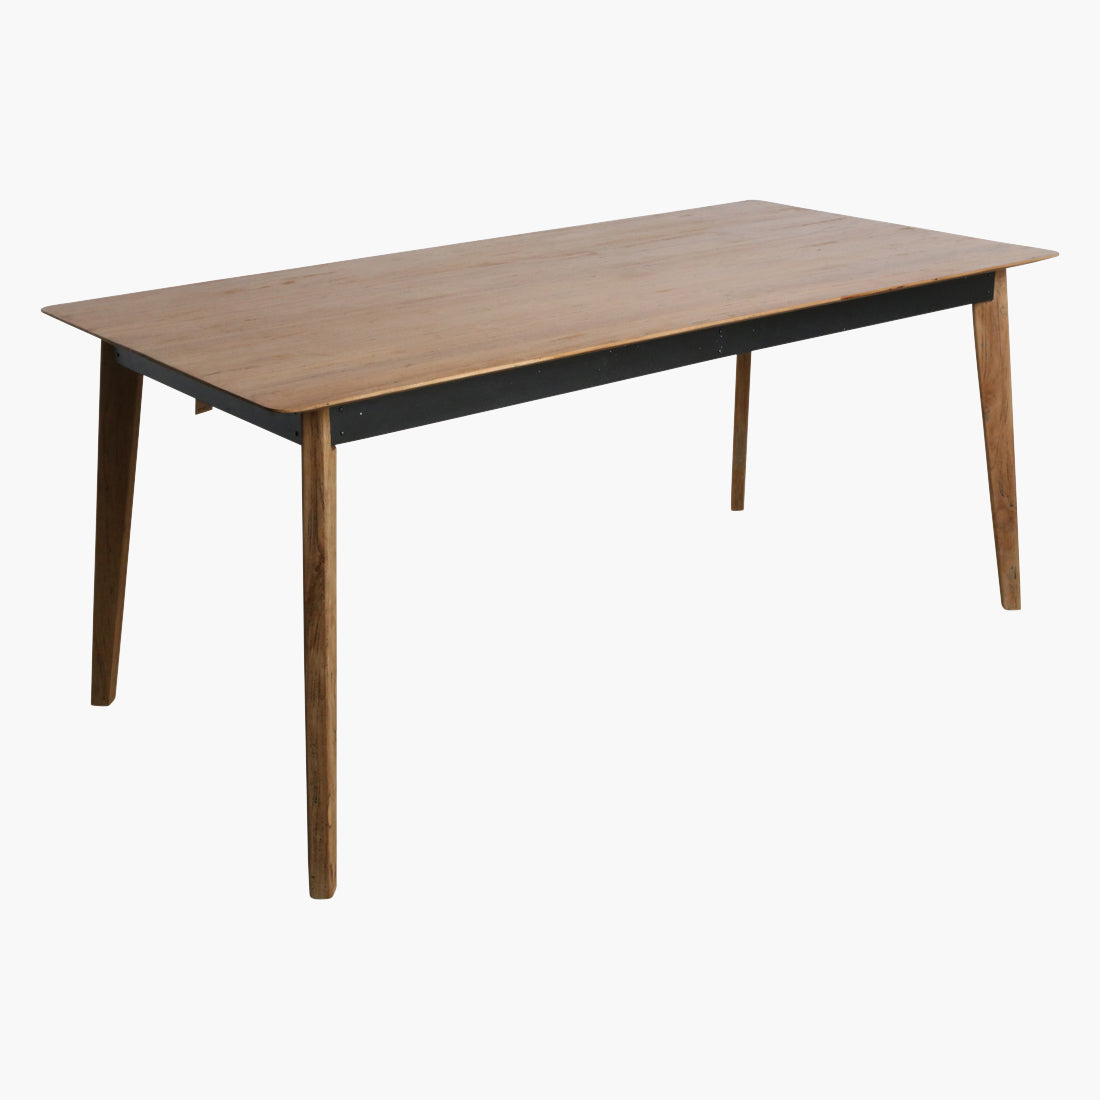 Craftsman dining table 200 cm